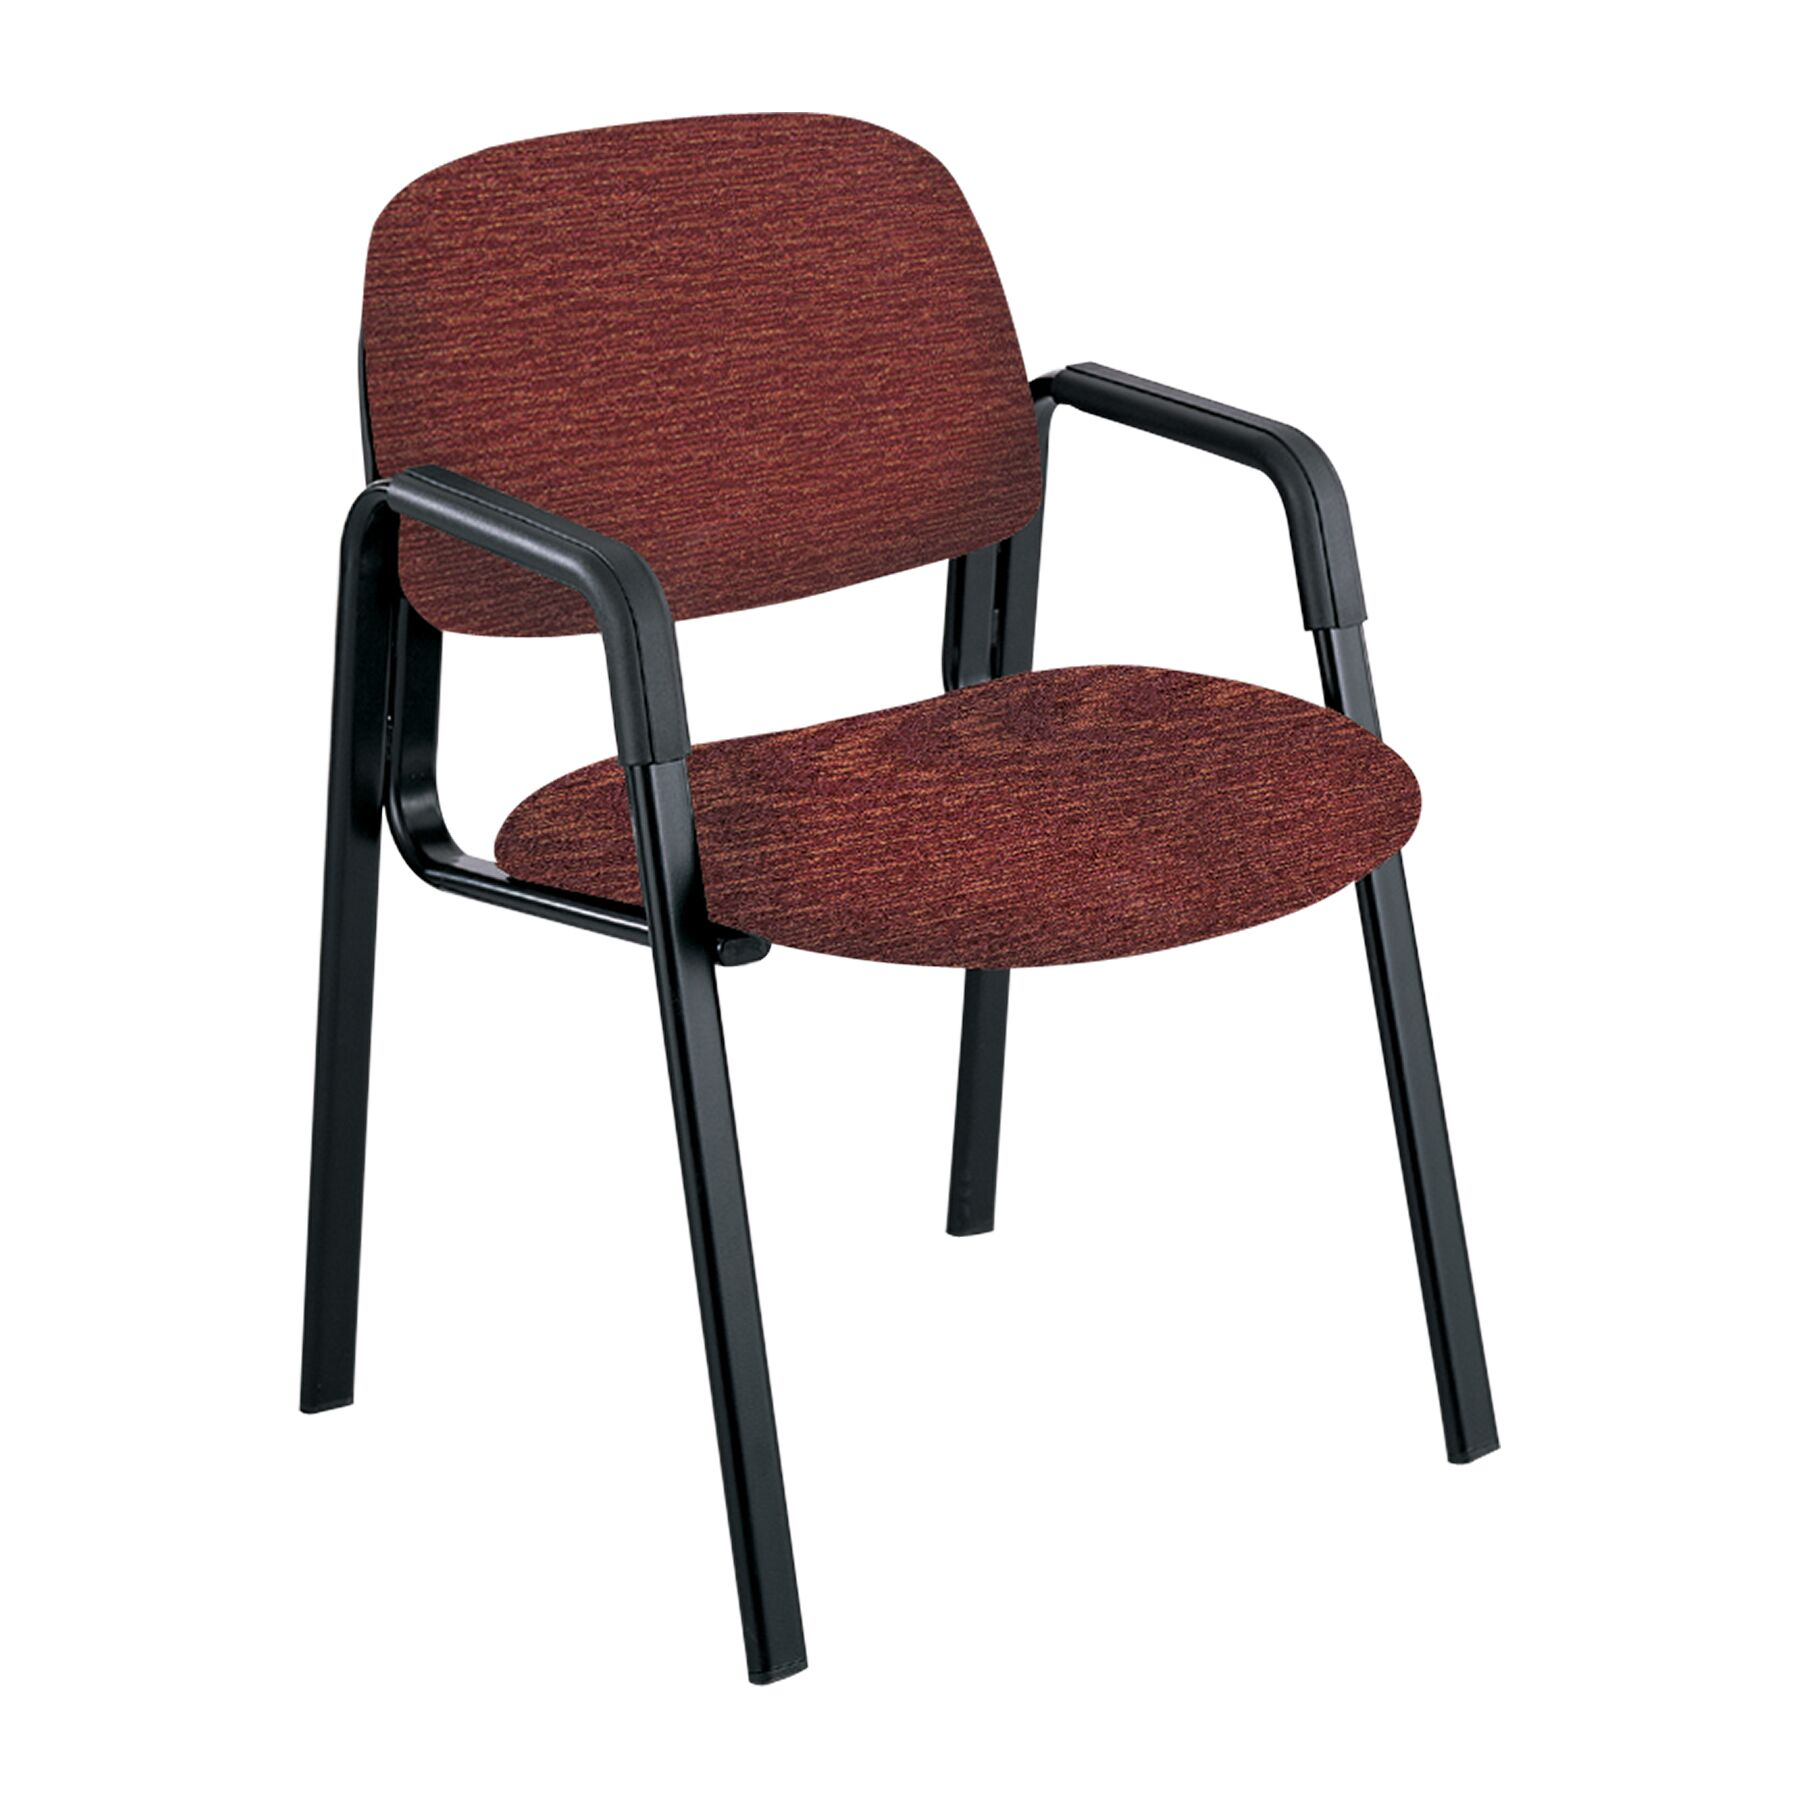 Cava Urth Guest Chair Color: Burgundy, Frame Type: Straight Leg